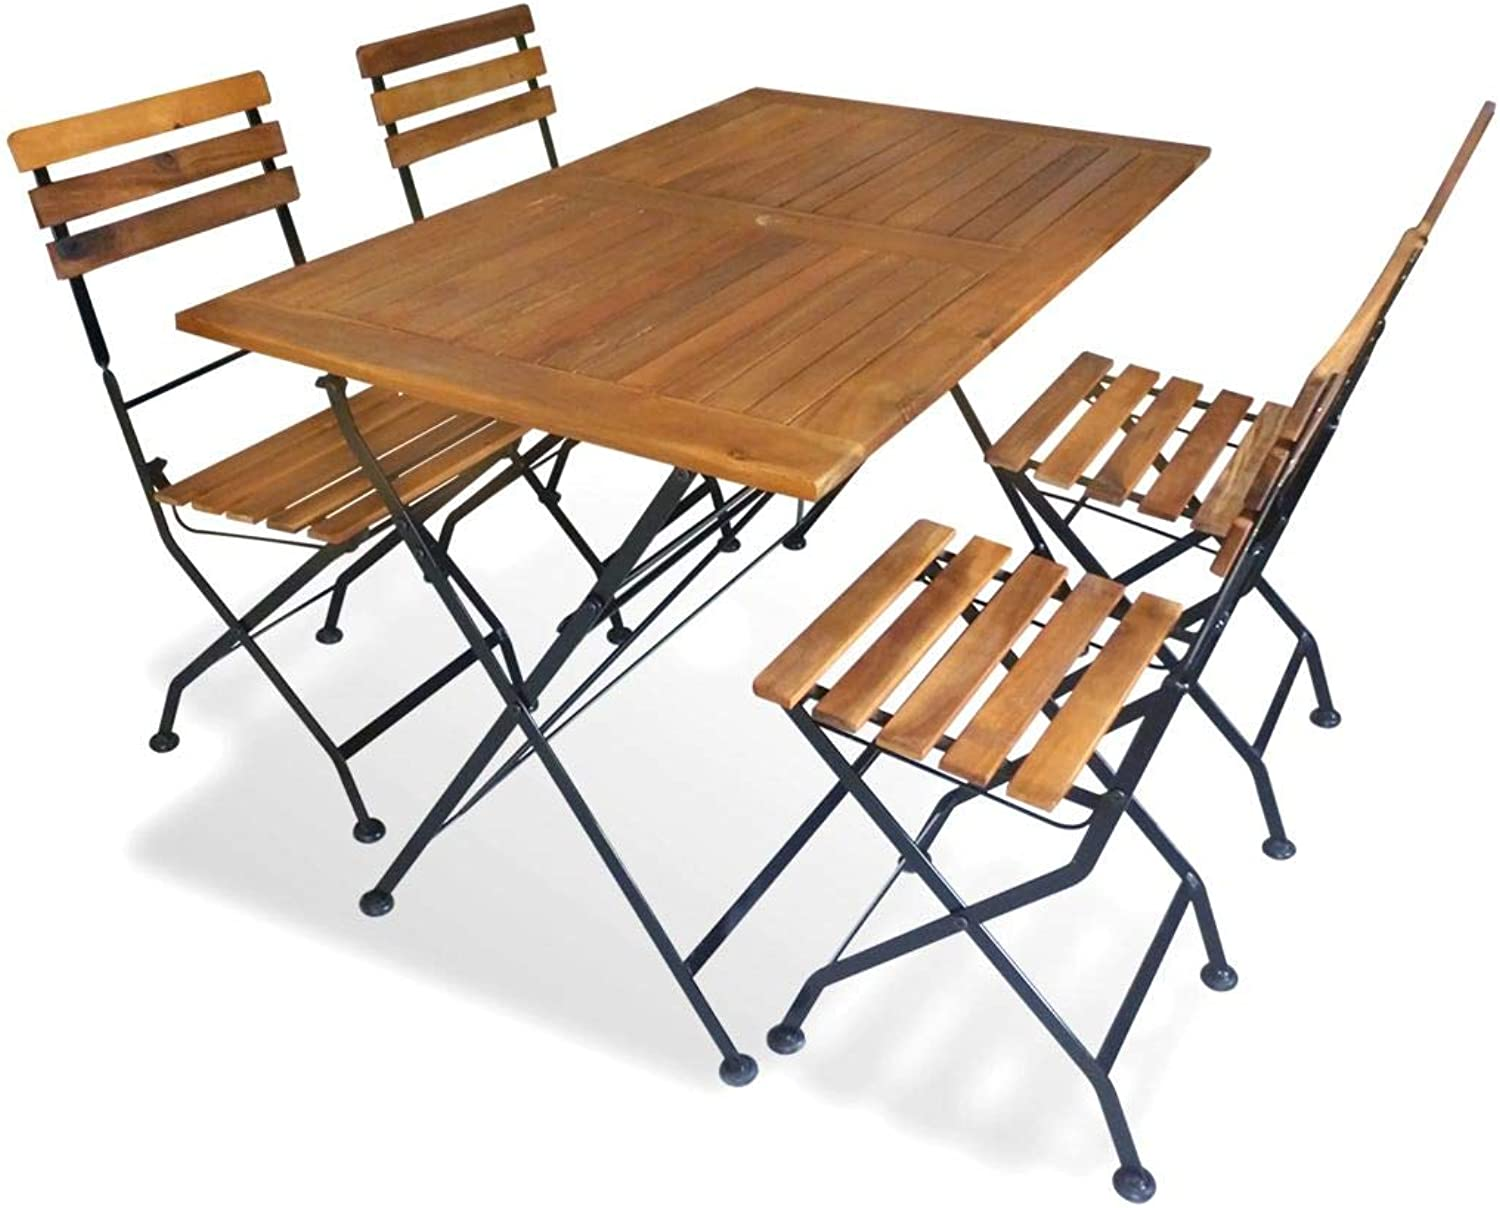 Festnight Outdoor Dining Set Foldable Graden Party Table and Chairs Set for Family Gathering Acacia Wood